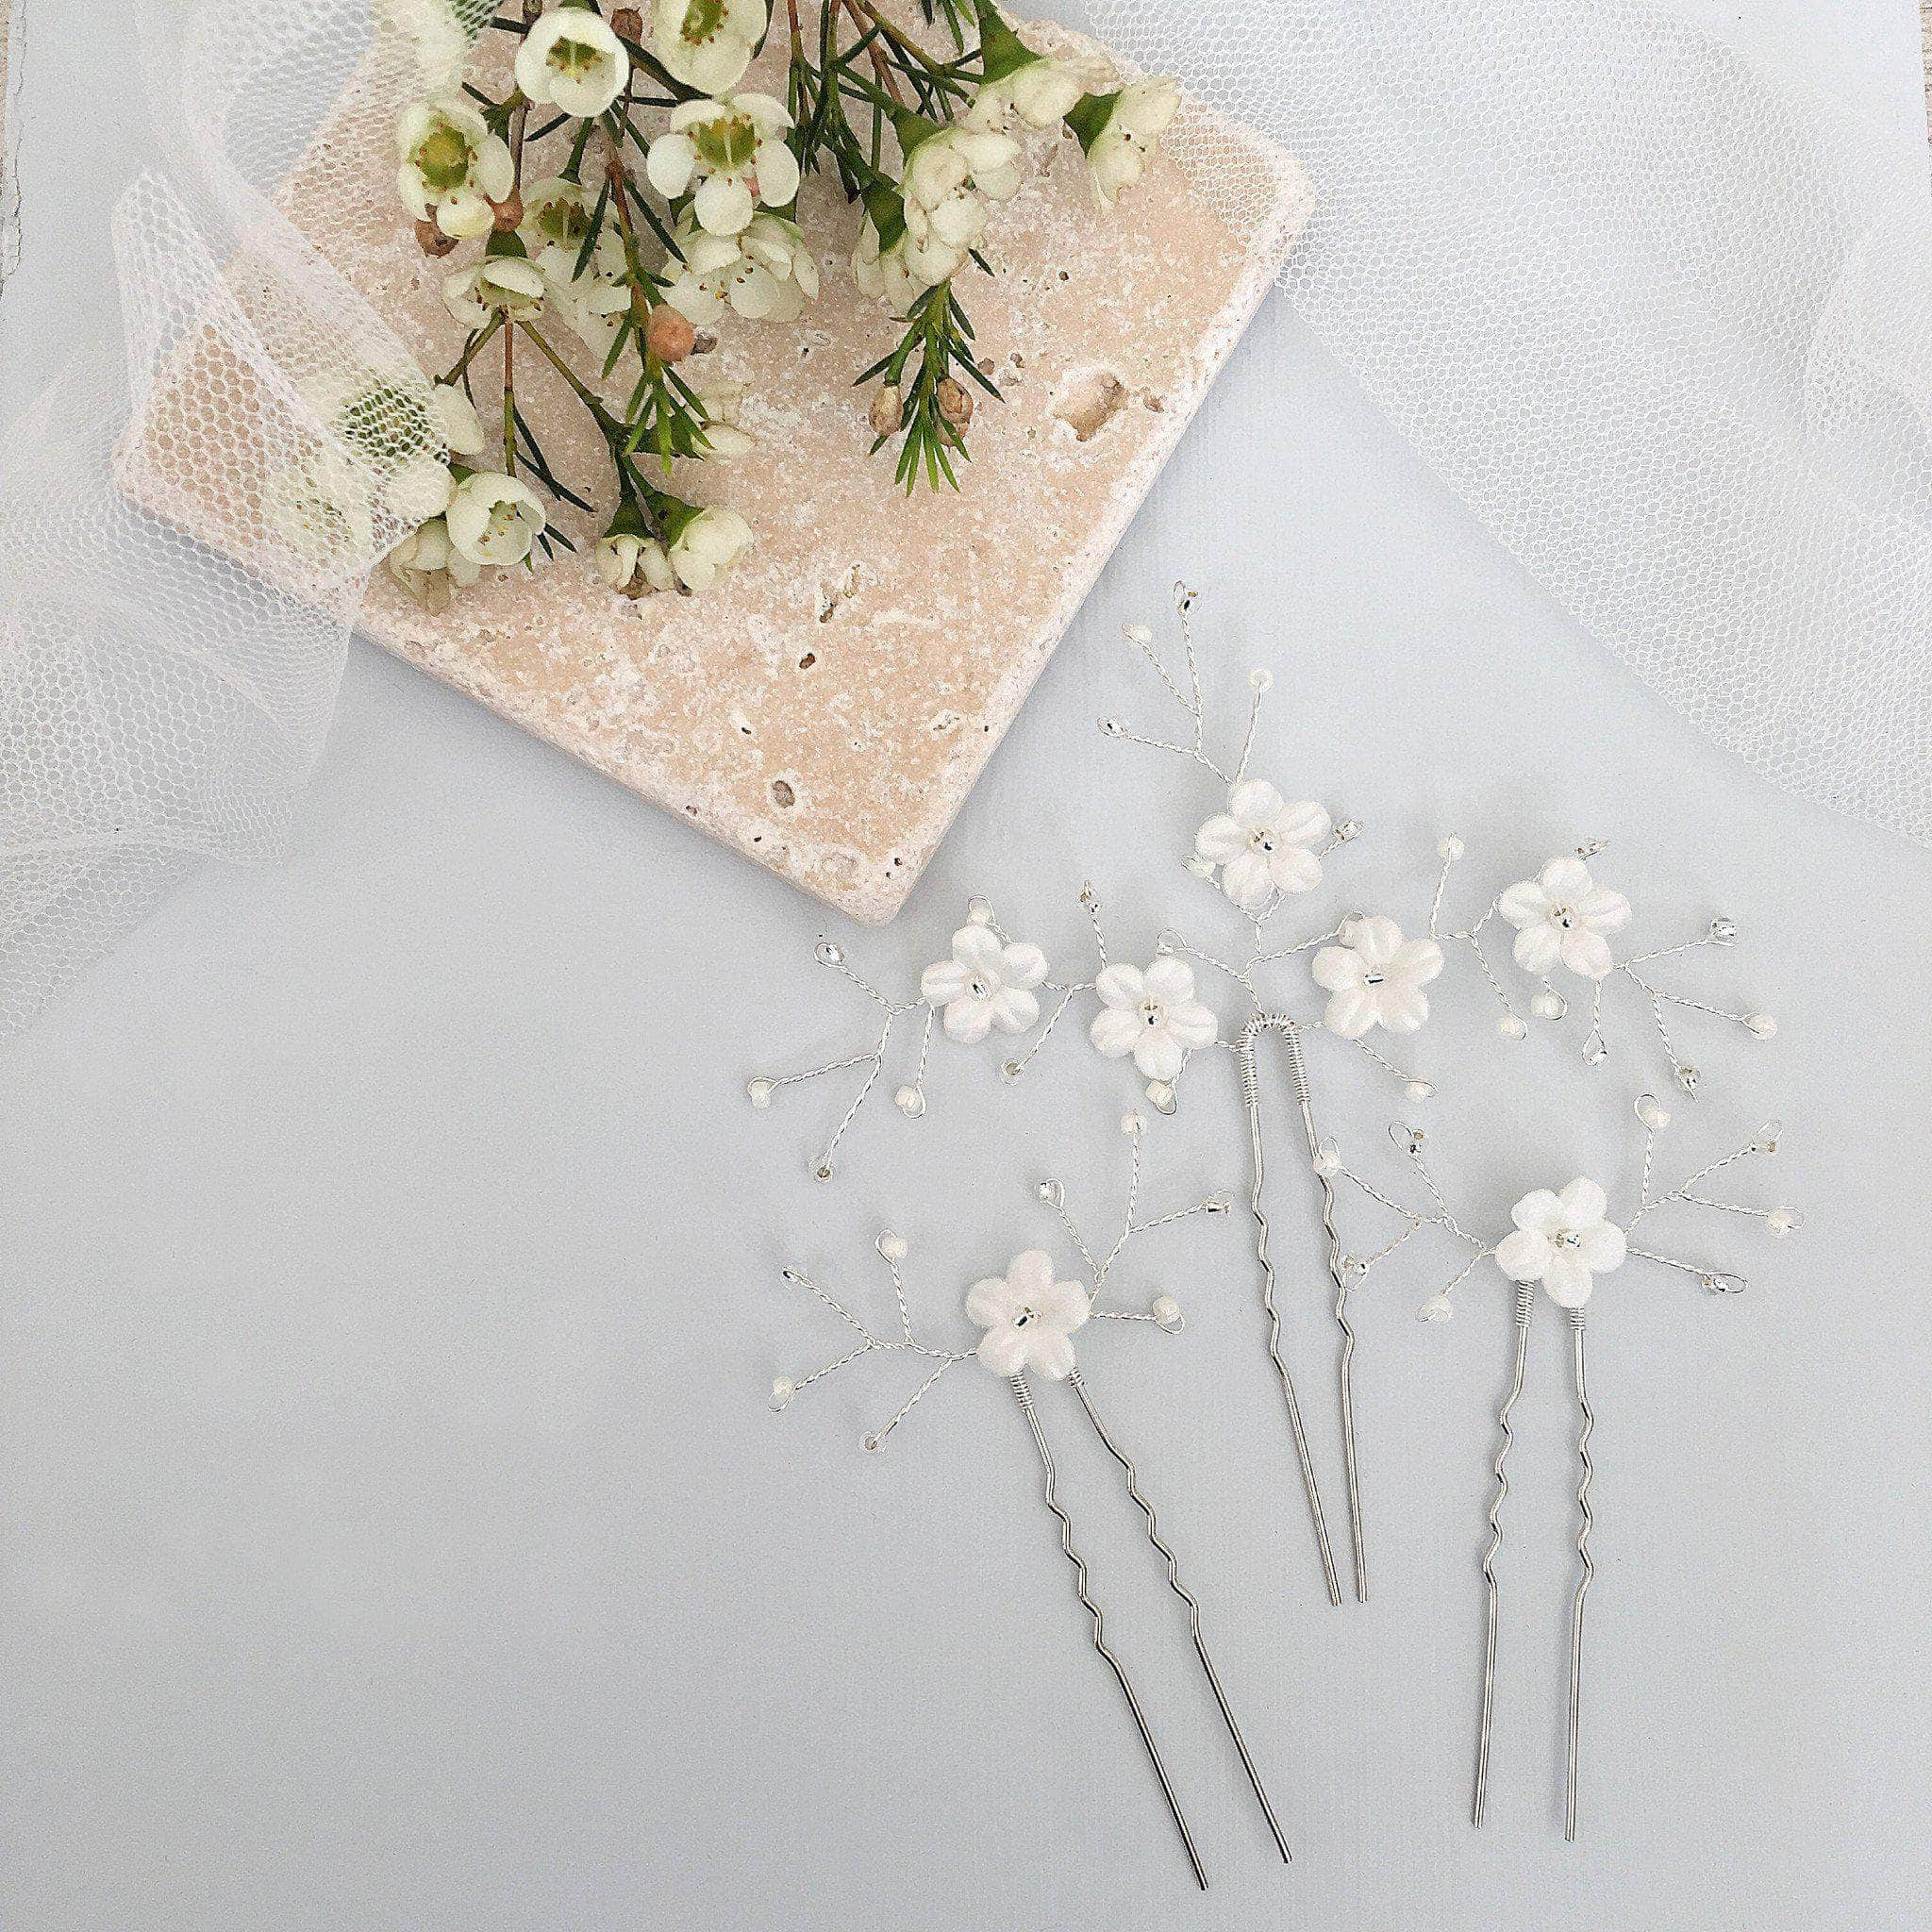 Flower Hair Pins For Wedding: Ivory Flower Wedding Hair Pins With Silver Sprays Set